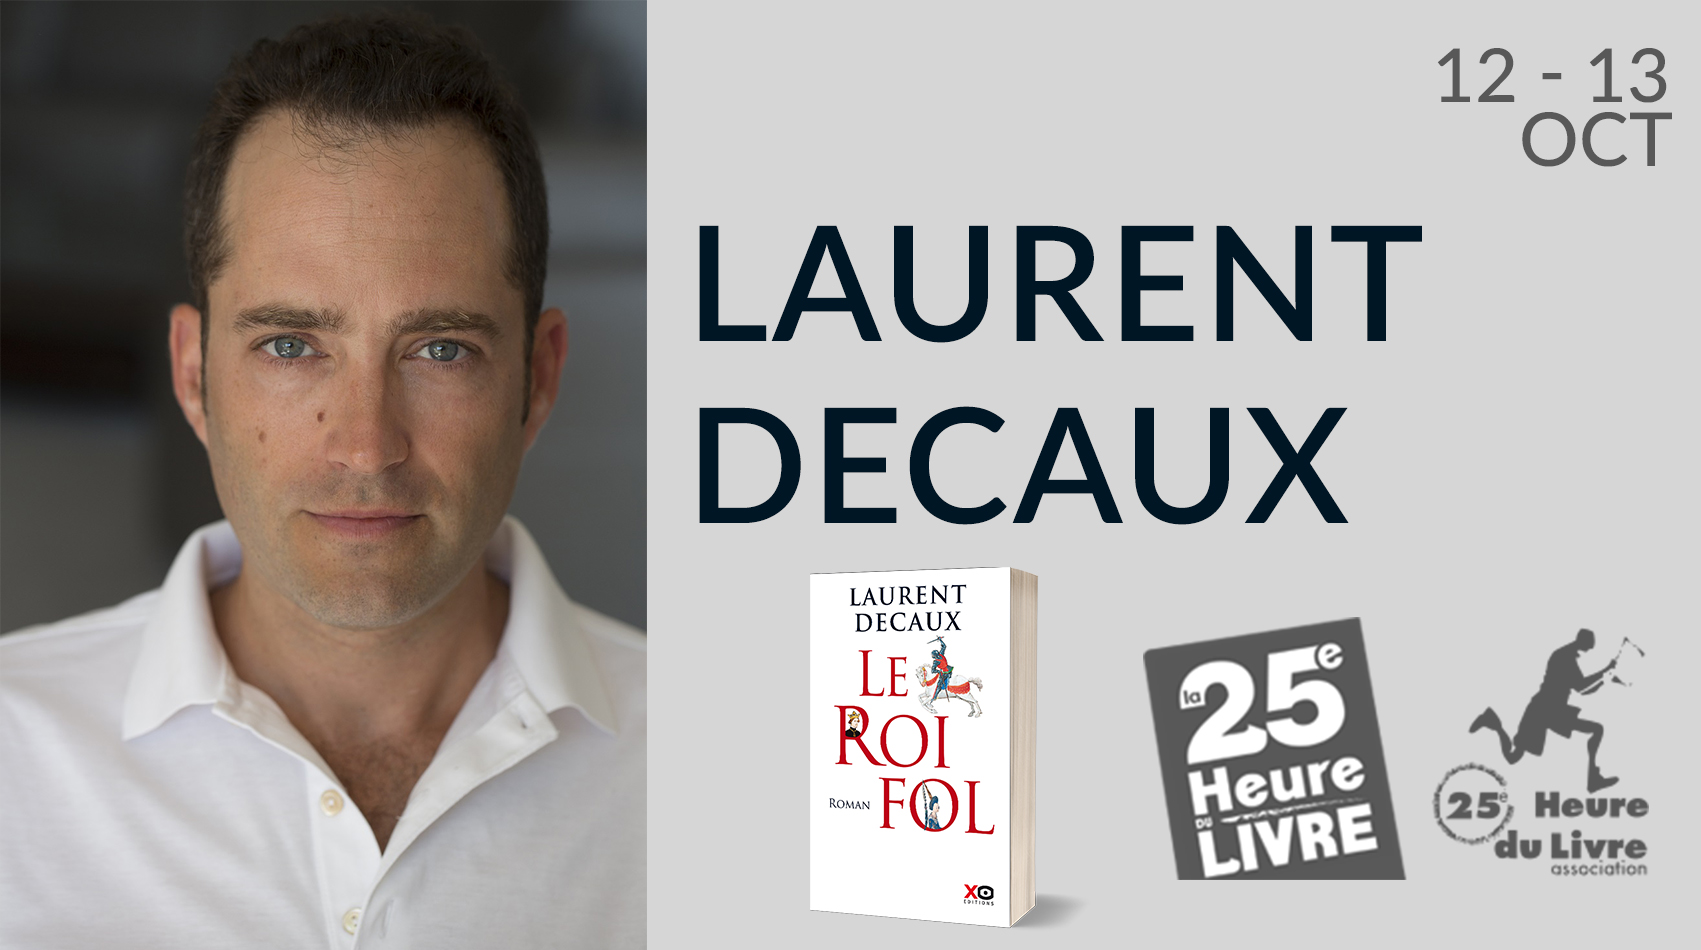 LAURENT DECAUX AU MANS